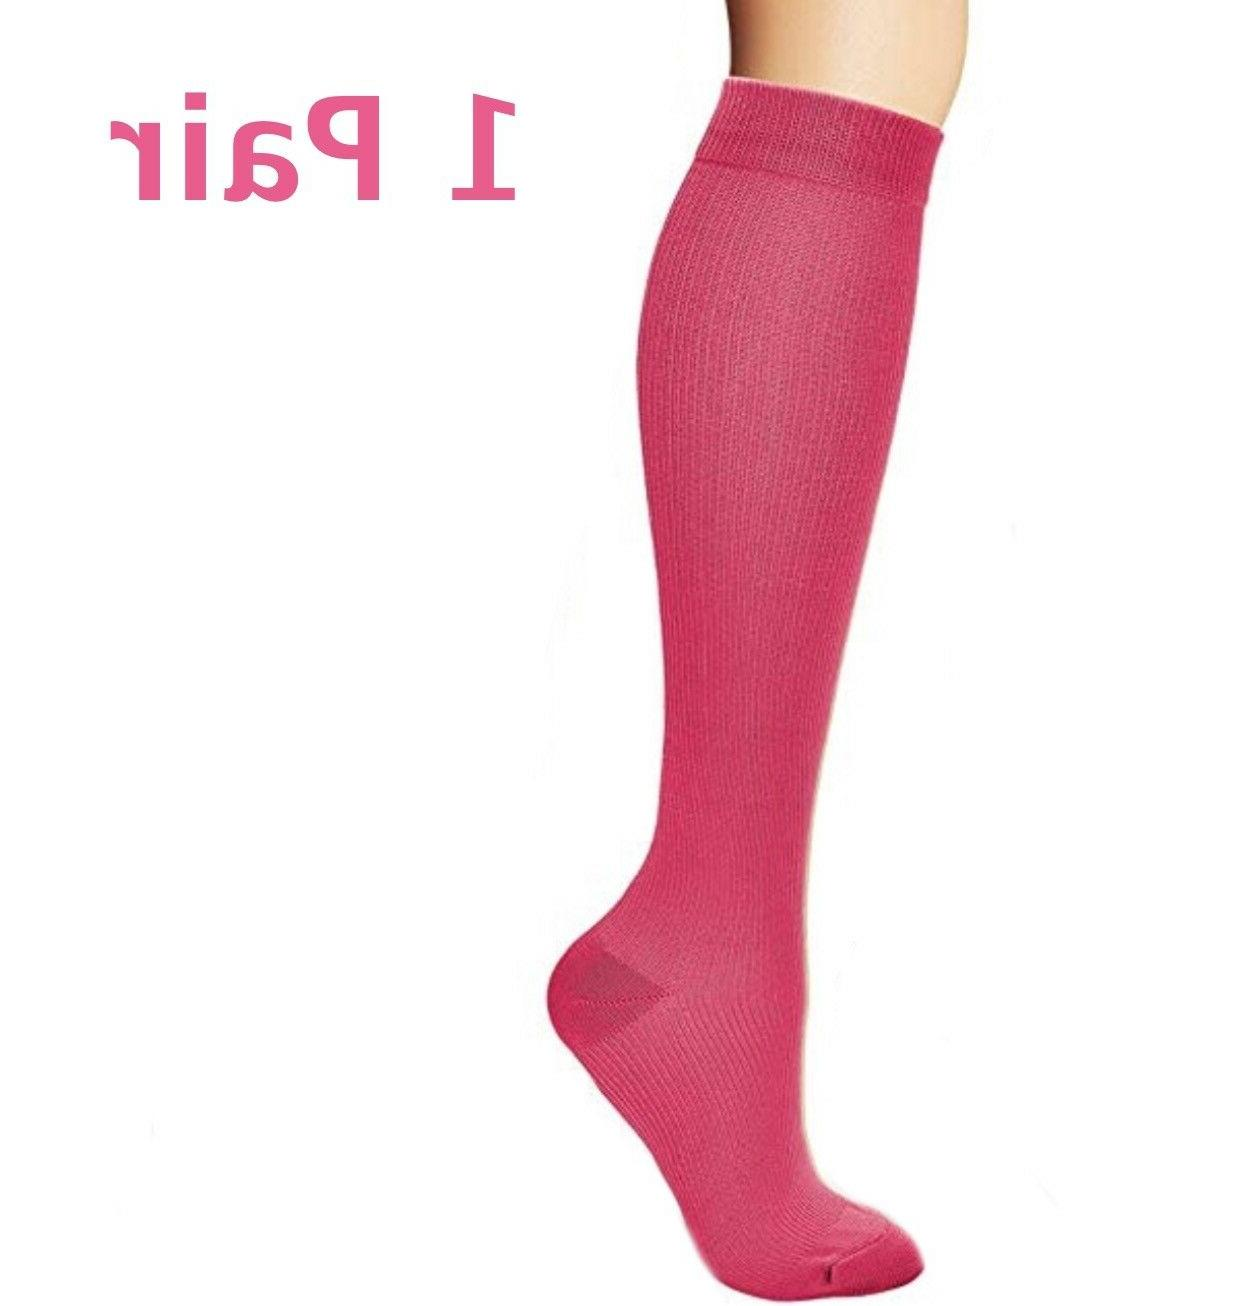 Compression X Relief Calf Foot Support Stocking